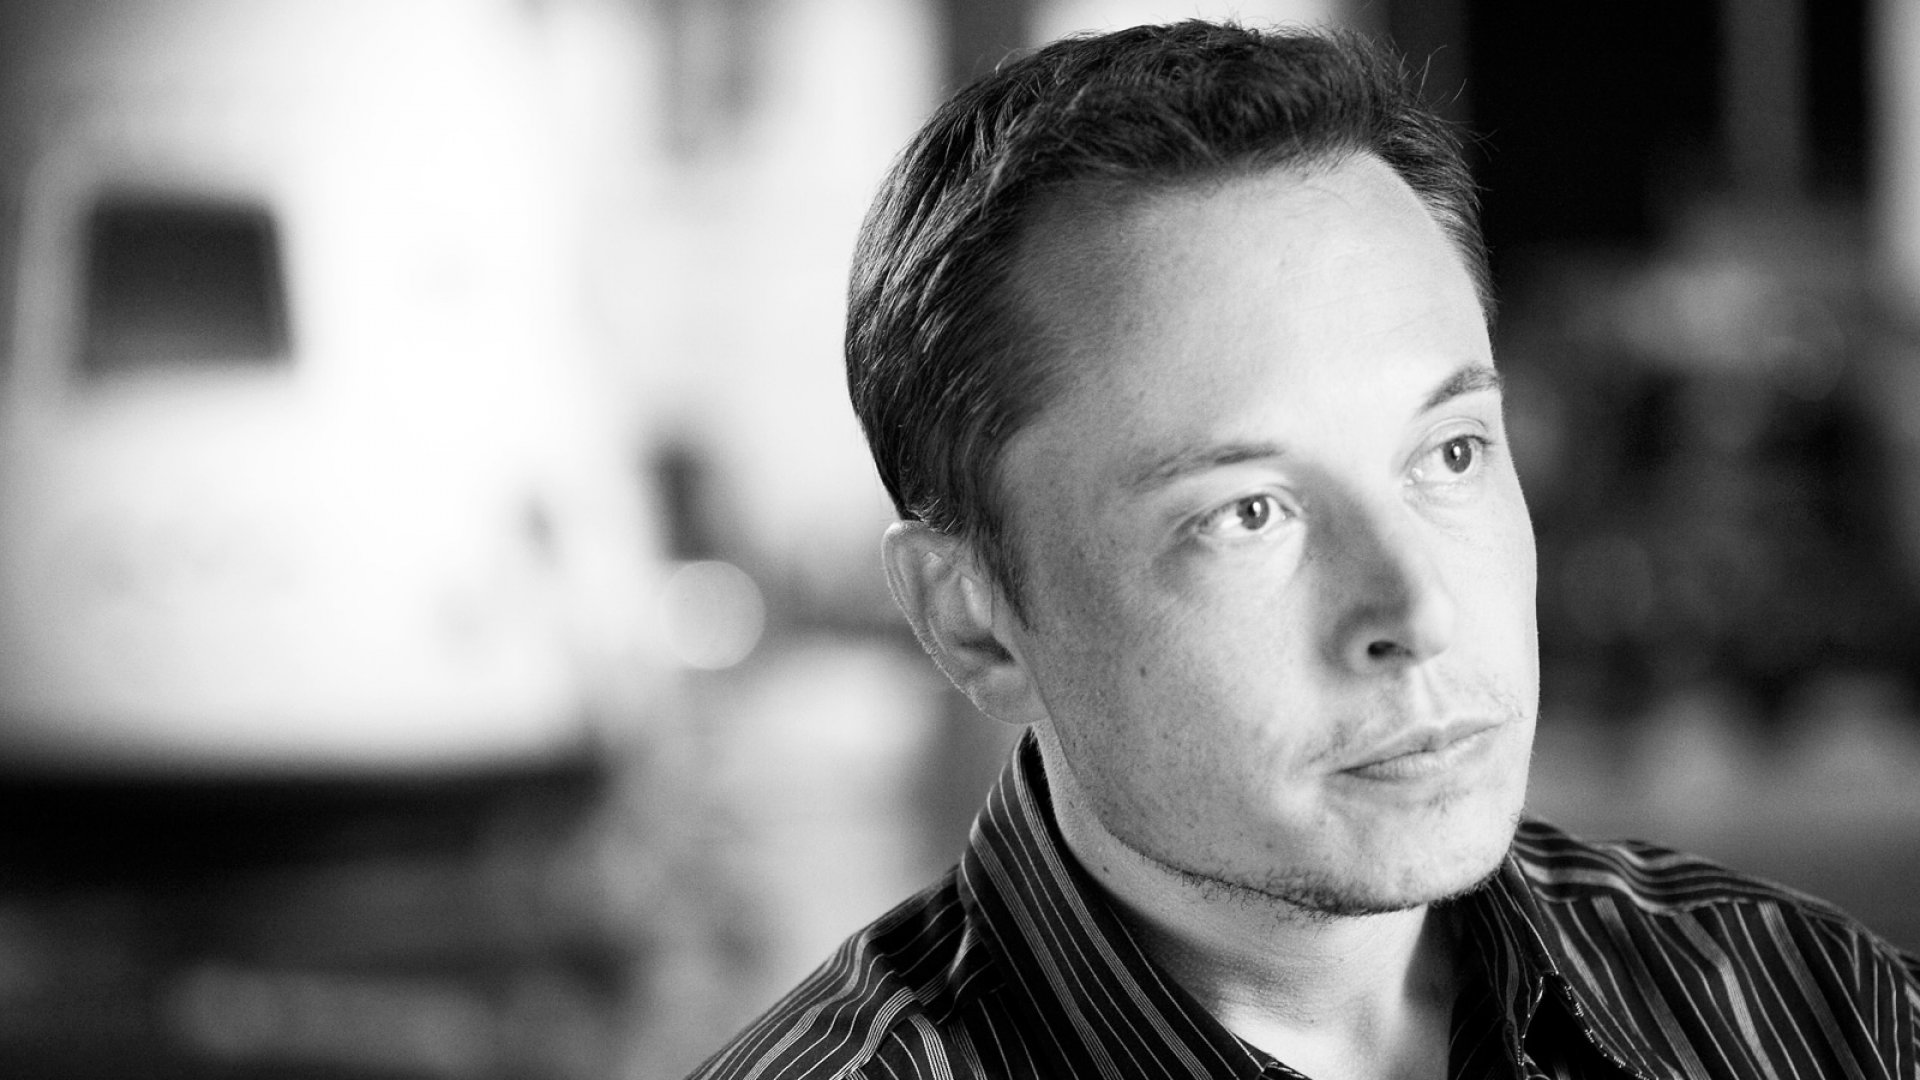 Elon Musk Says The Human Brain Cannot Cope With Business Failure. Is He Right?